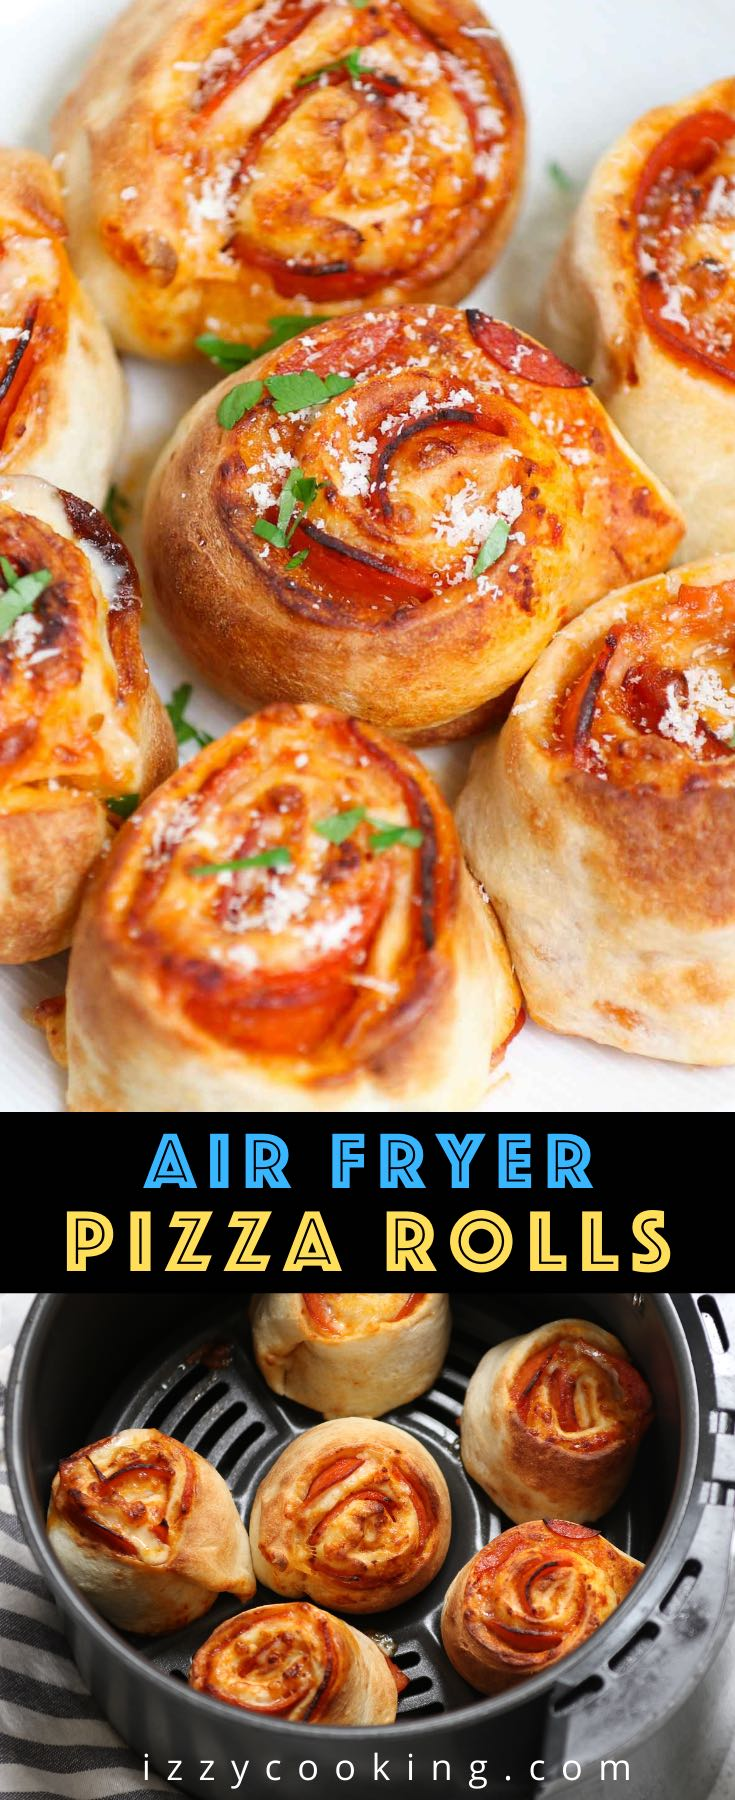 These Air Fryer Pizza Rolls have delicious pepperoni and mozzarella cheese packed in pizza pockets – an instant crowd-pleaser great for appetizer or snack. You can easily make these bite-sized mini pizzas at home from scratch in under 10 minutes. We've also included instructions on how to air fry frozen pizza puffs straight from the freezer.